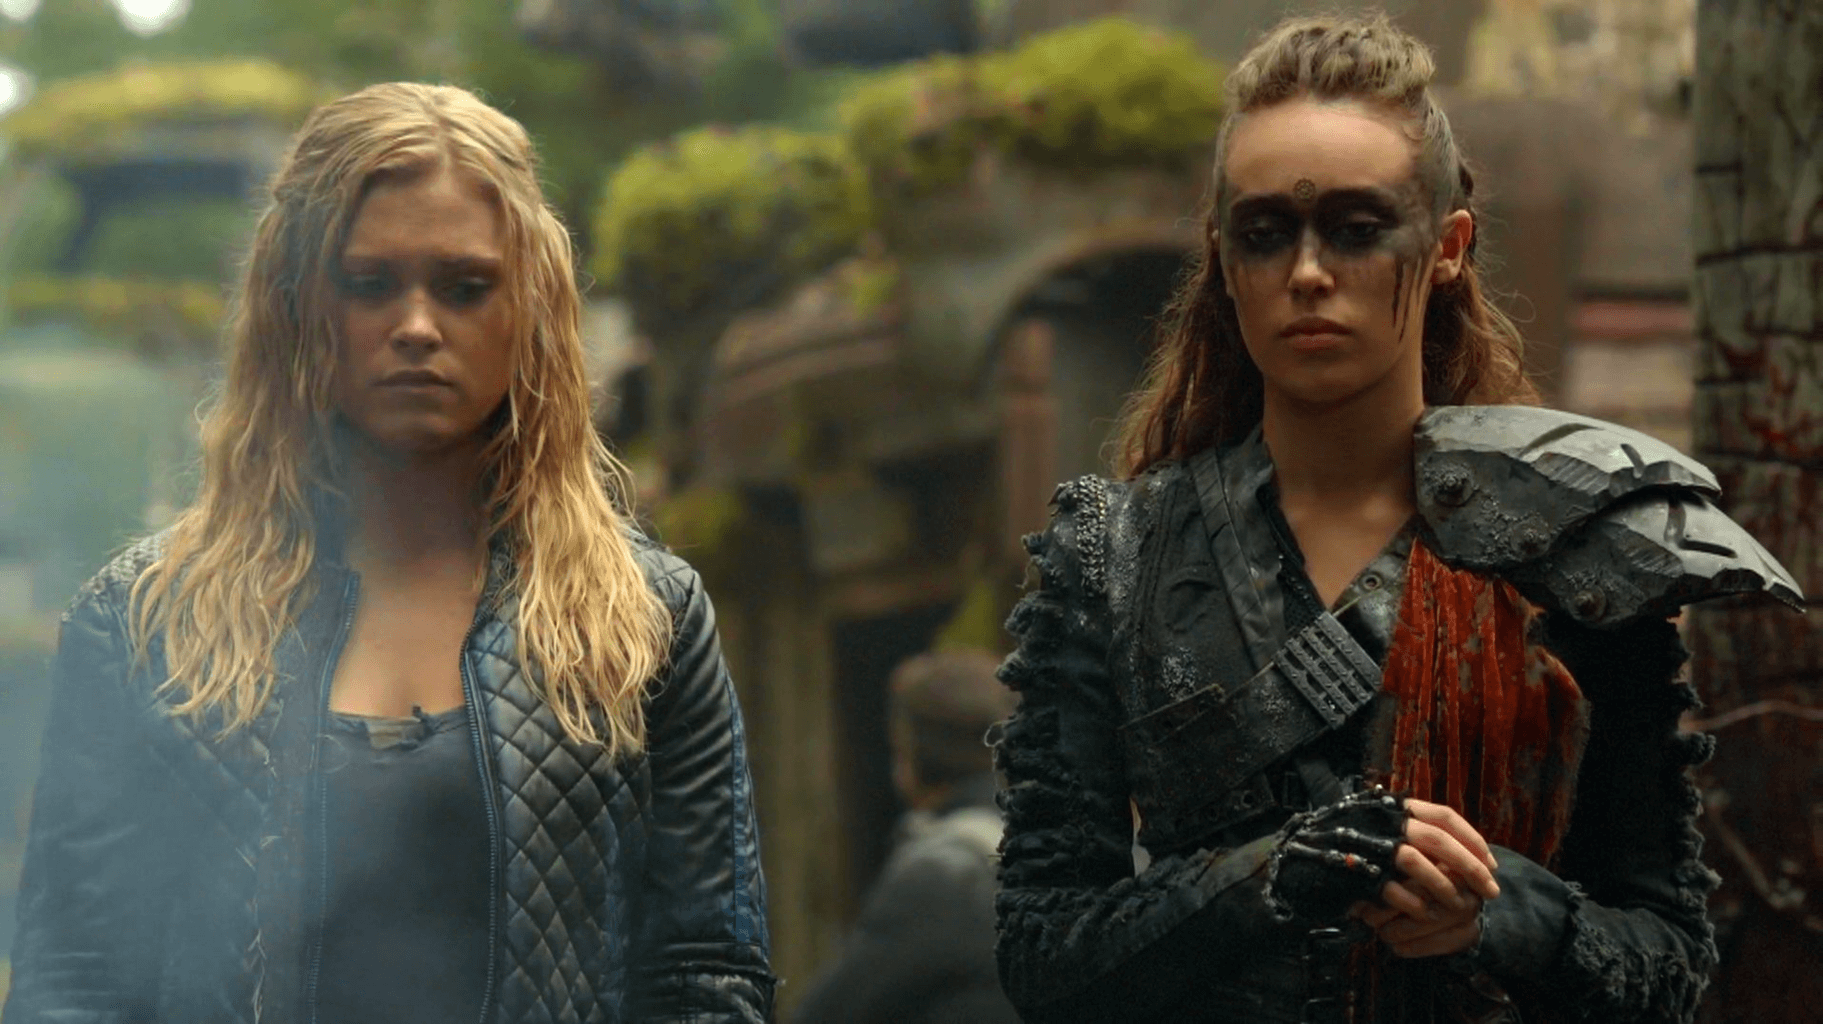 lexa and clarke relationship advice